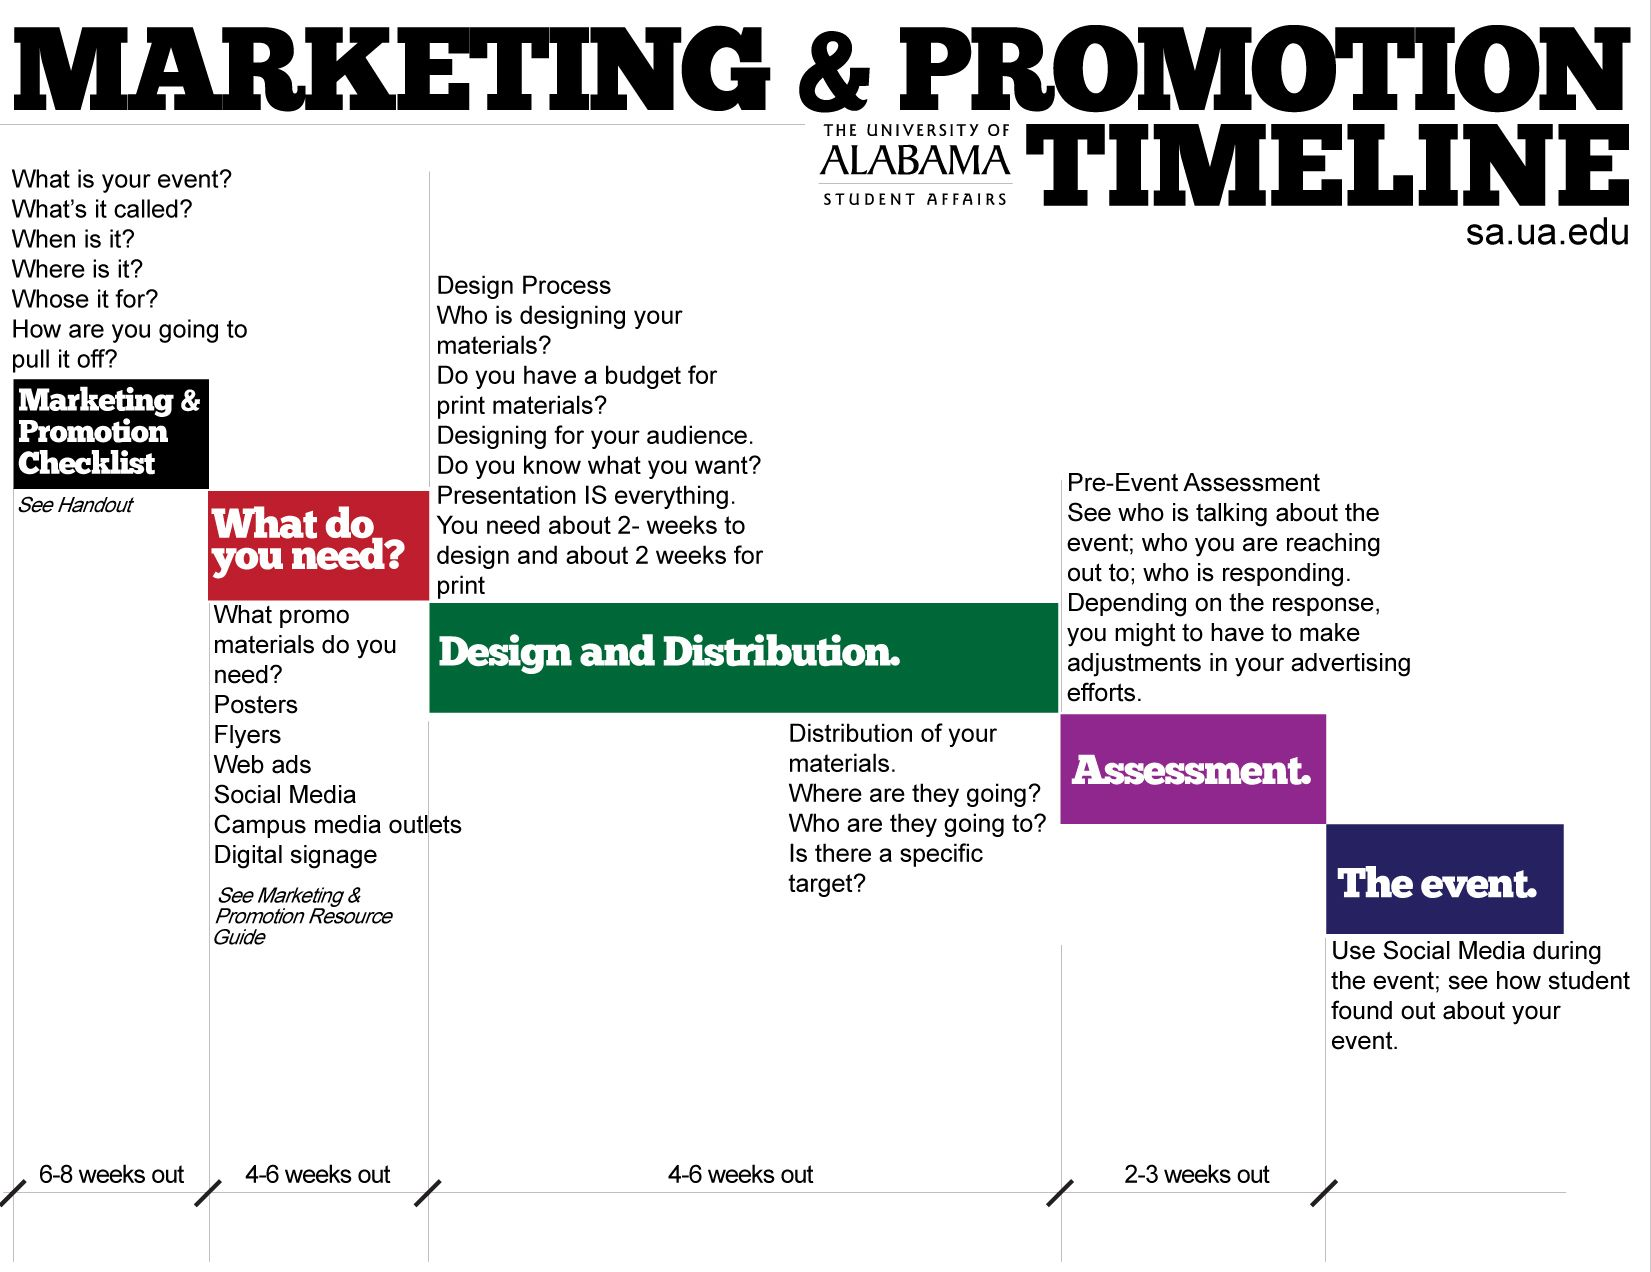 Business plan timeline template trattorialeondoro business plan timeline template cheaphphosting Gallery